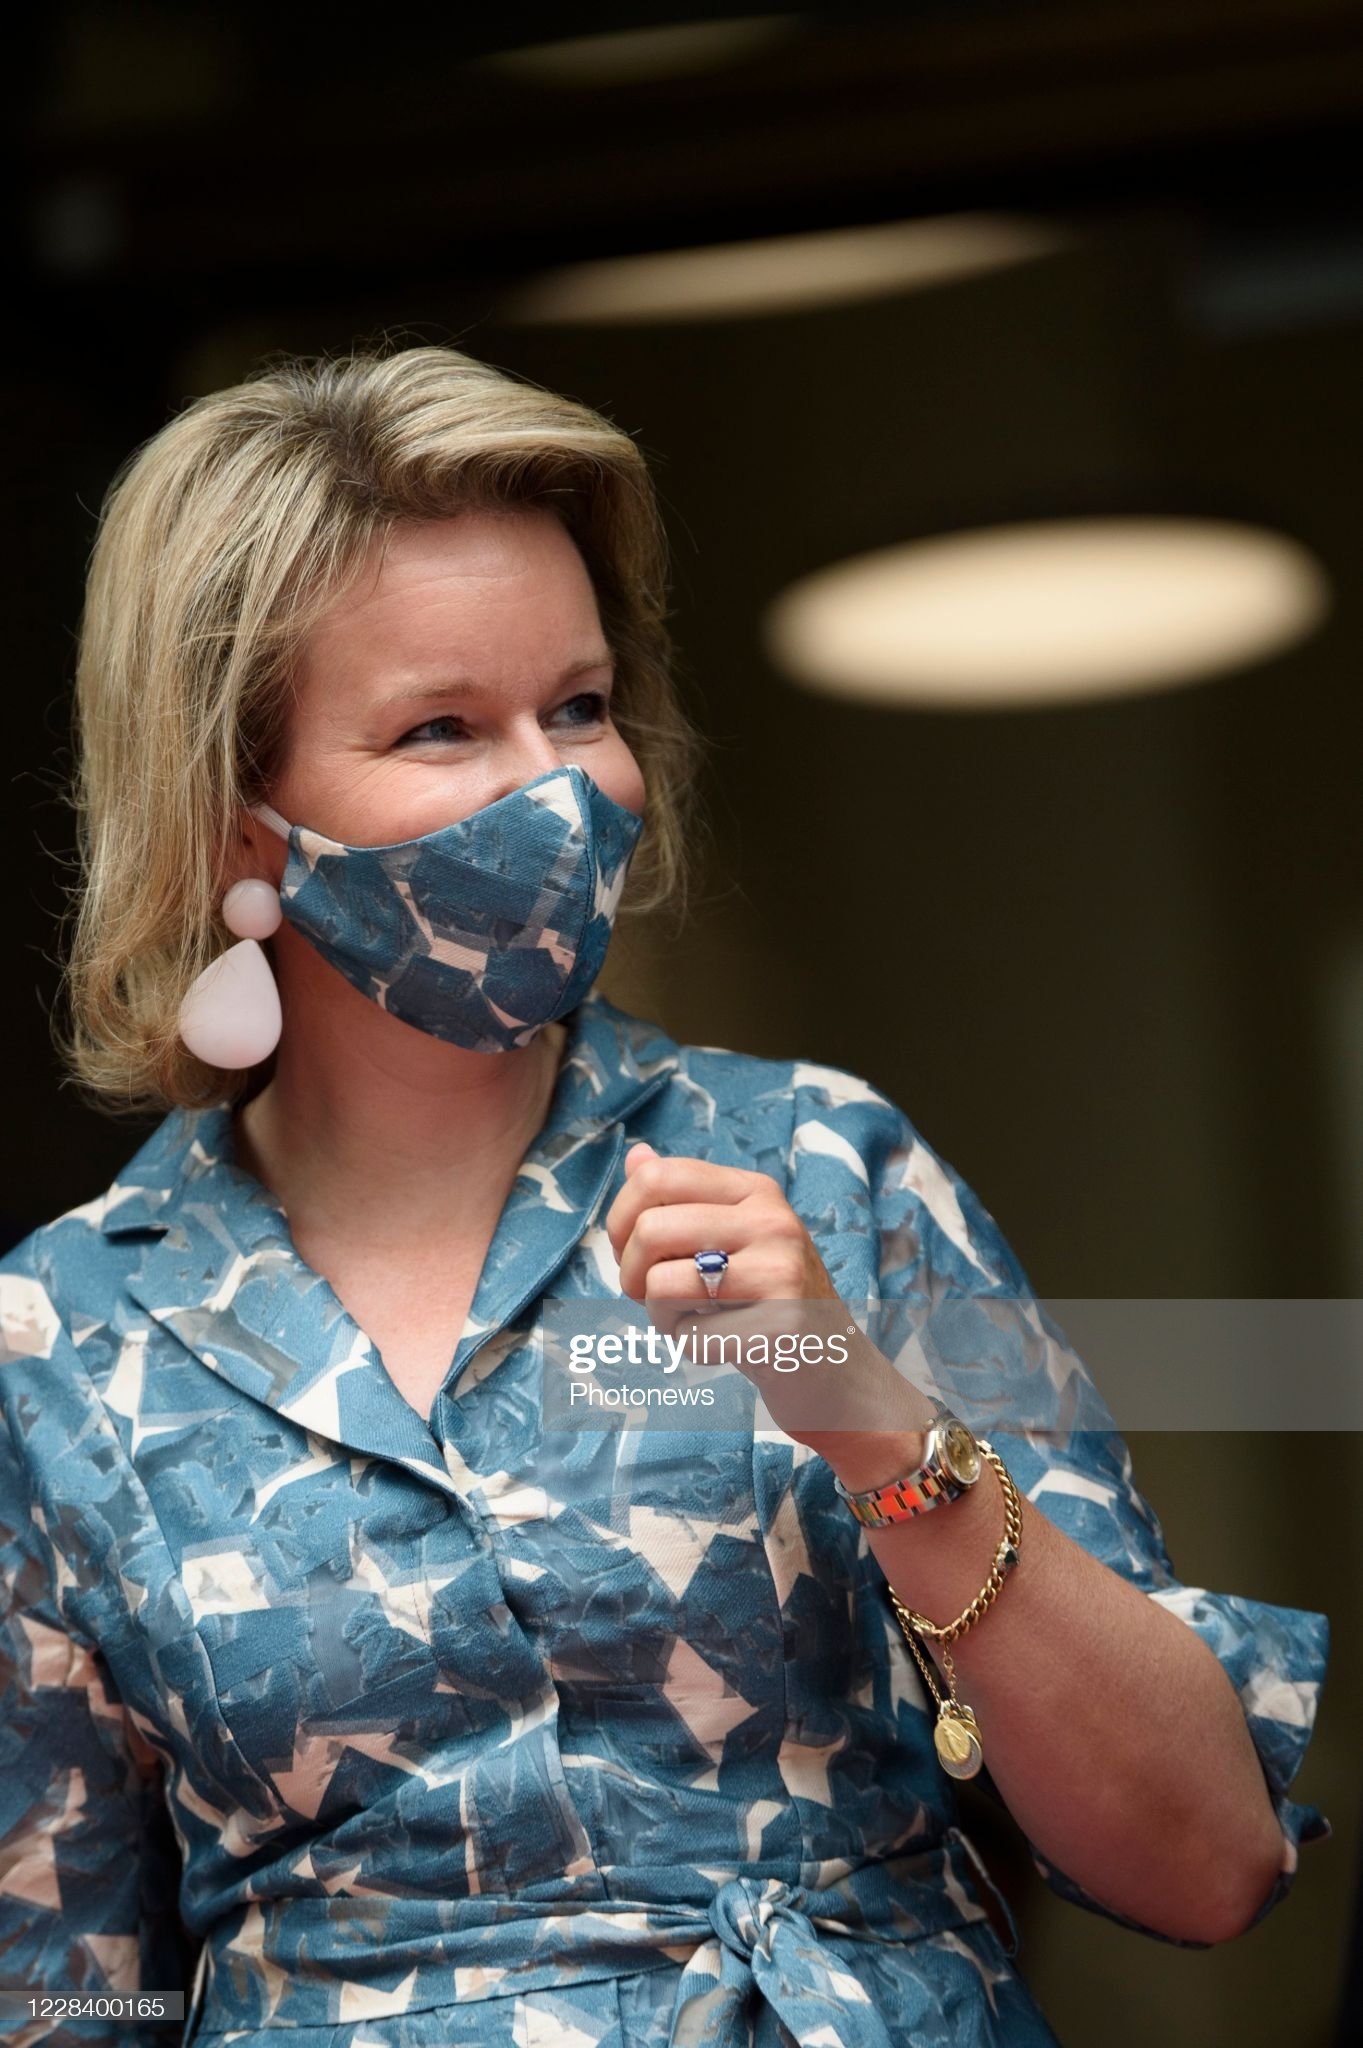 opening-of-the-new-wikifin-lab-in-the-presence-of-the-queen-mathilde-picture-id1228400165